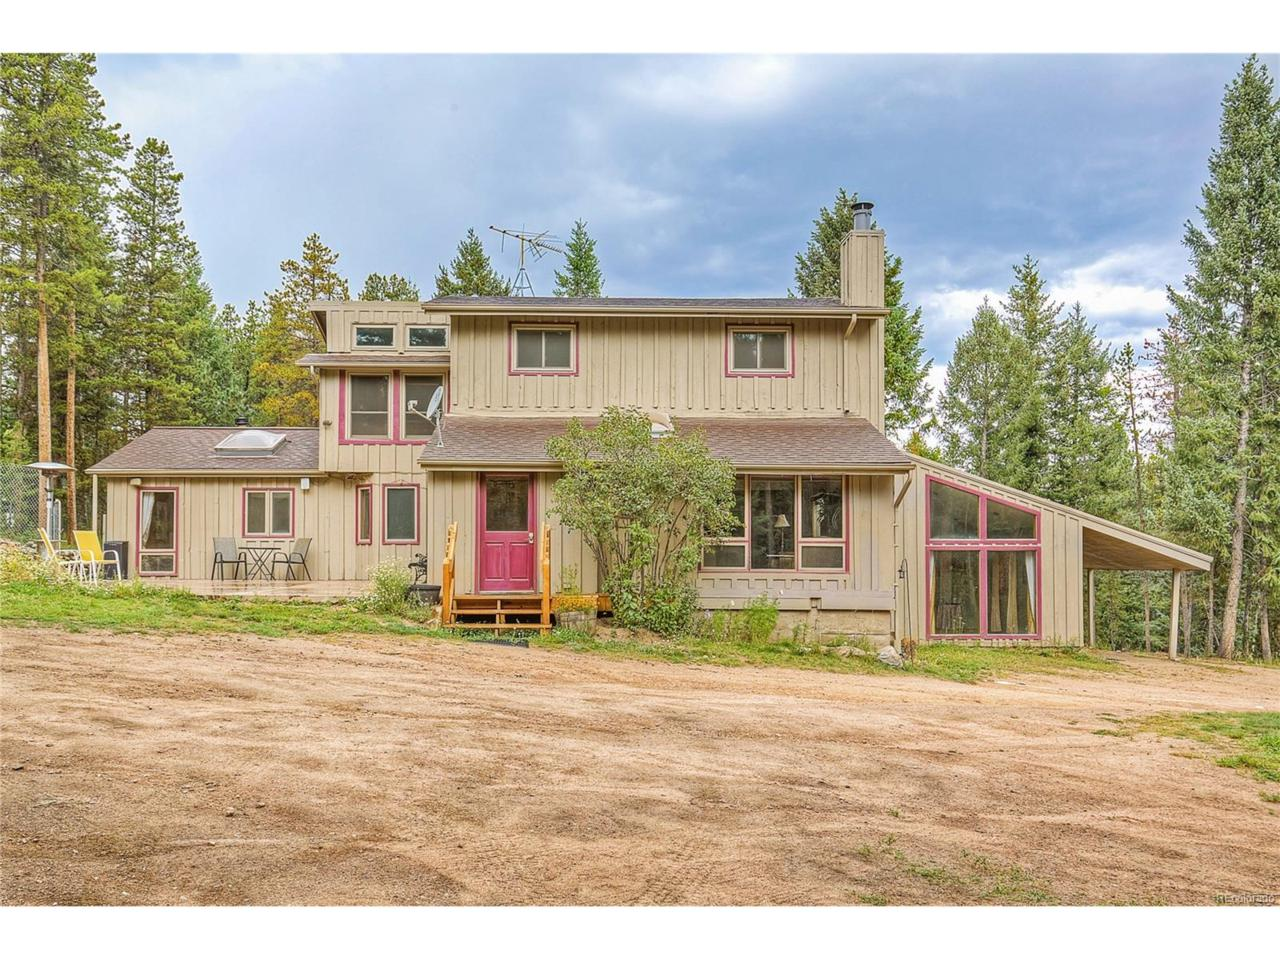 27677 Pine Grove Trail, Conifer, CO 80433 (MLS #5798013) :: 8z Real Estate